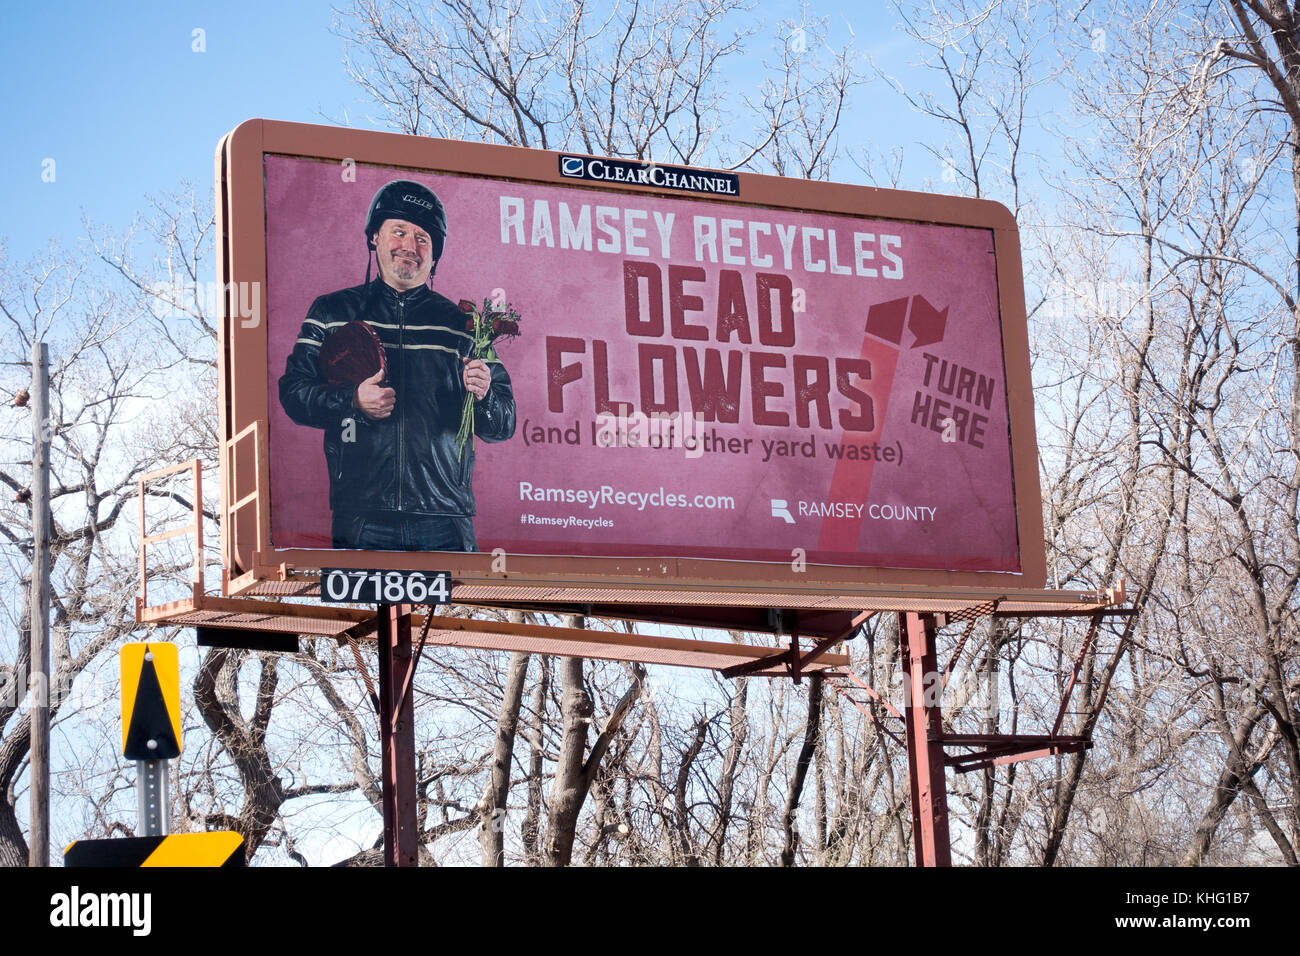 Billboard advertising that Ramsey County recycles dead flowers and other yard waste at this site. St Paul Minnesota - Stock Image